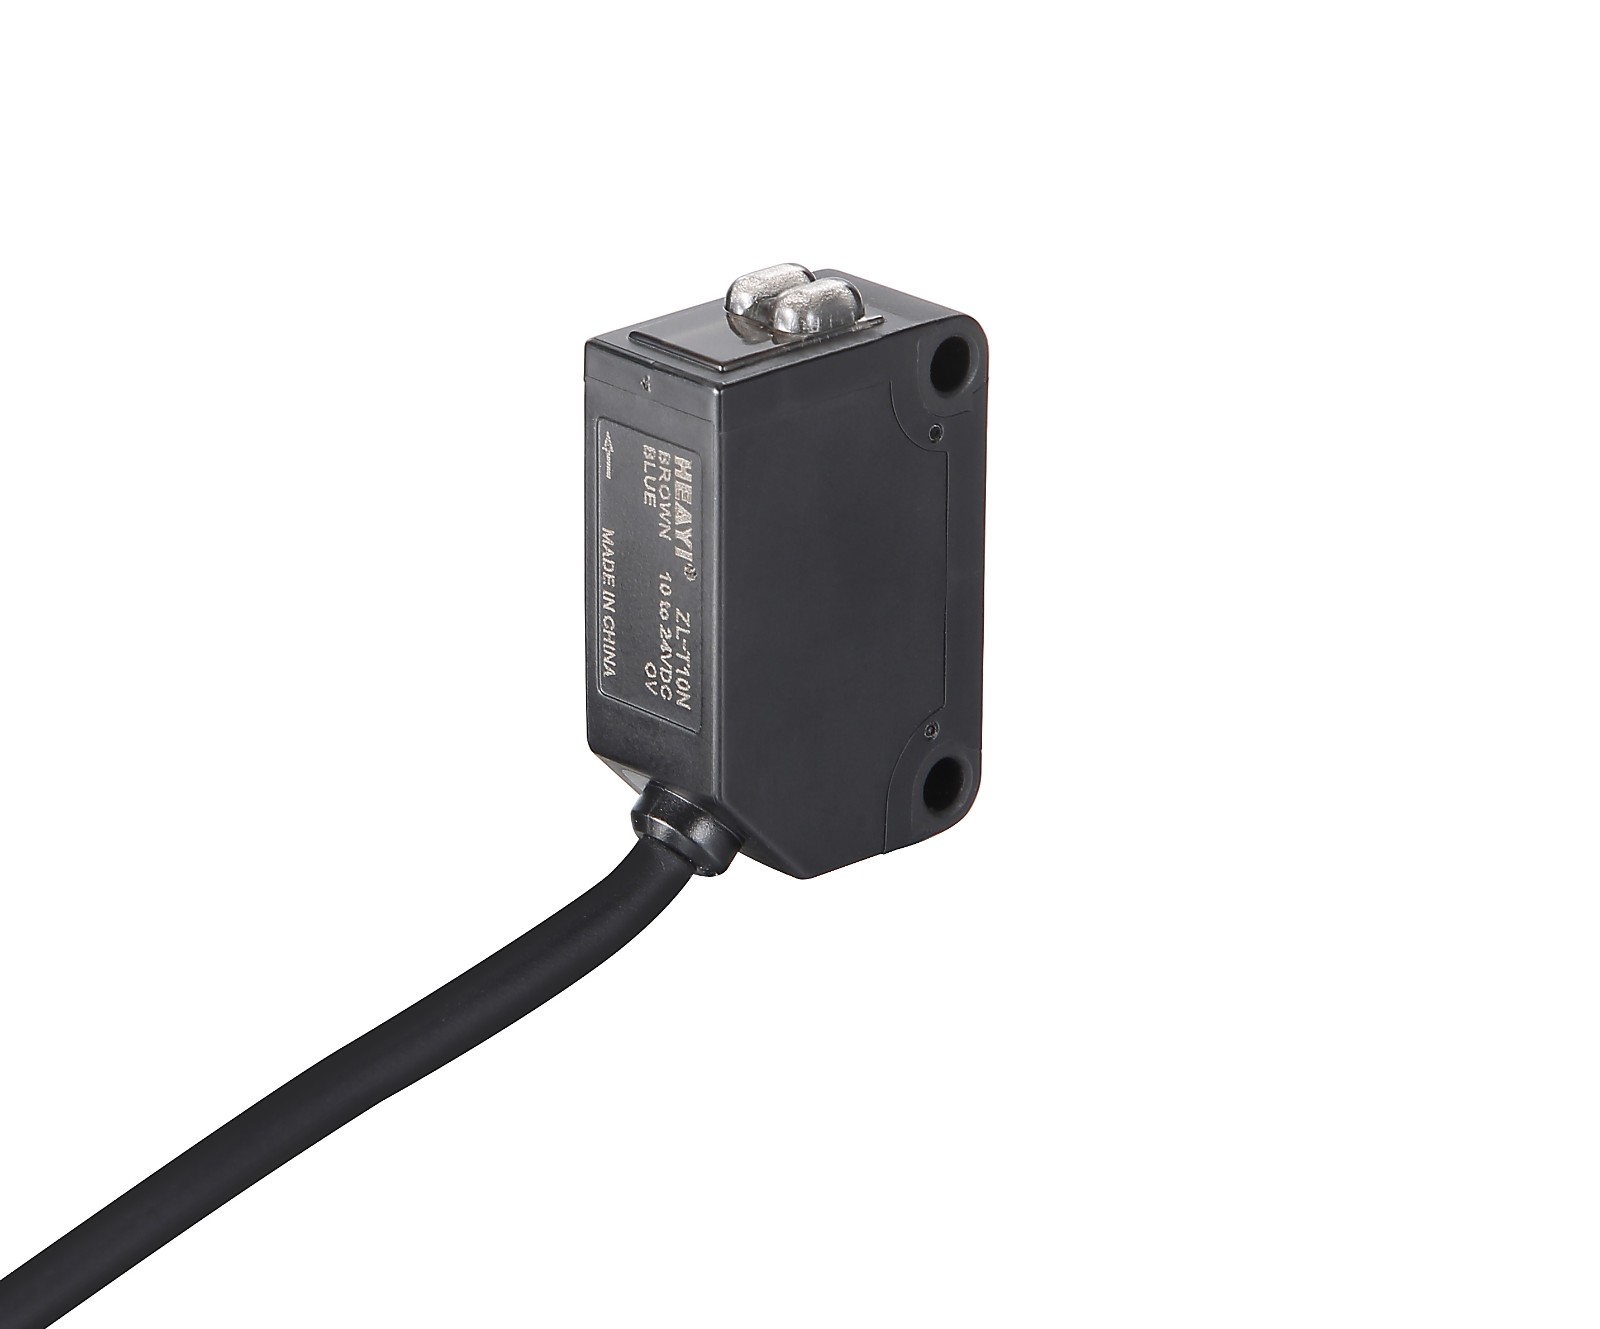 Heyi-Best Photoelectric Sensors Zl-t10 Infrared Proximity Sensor